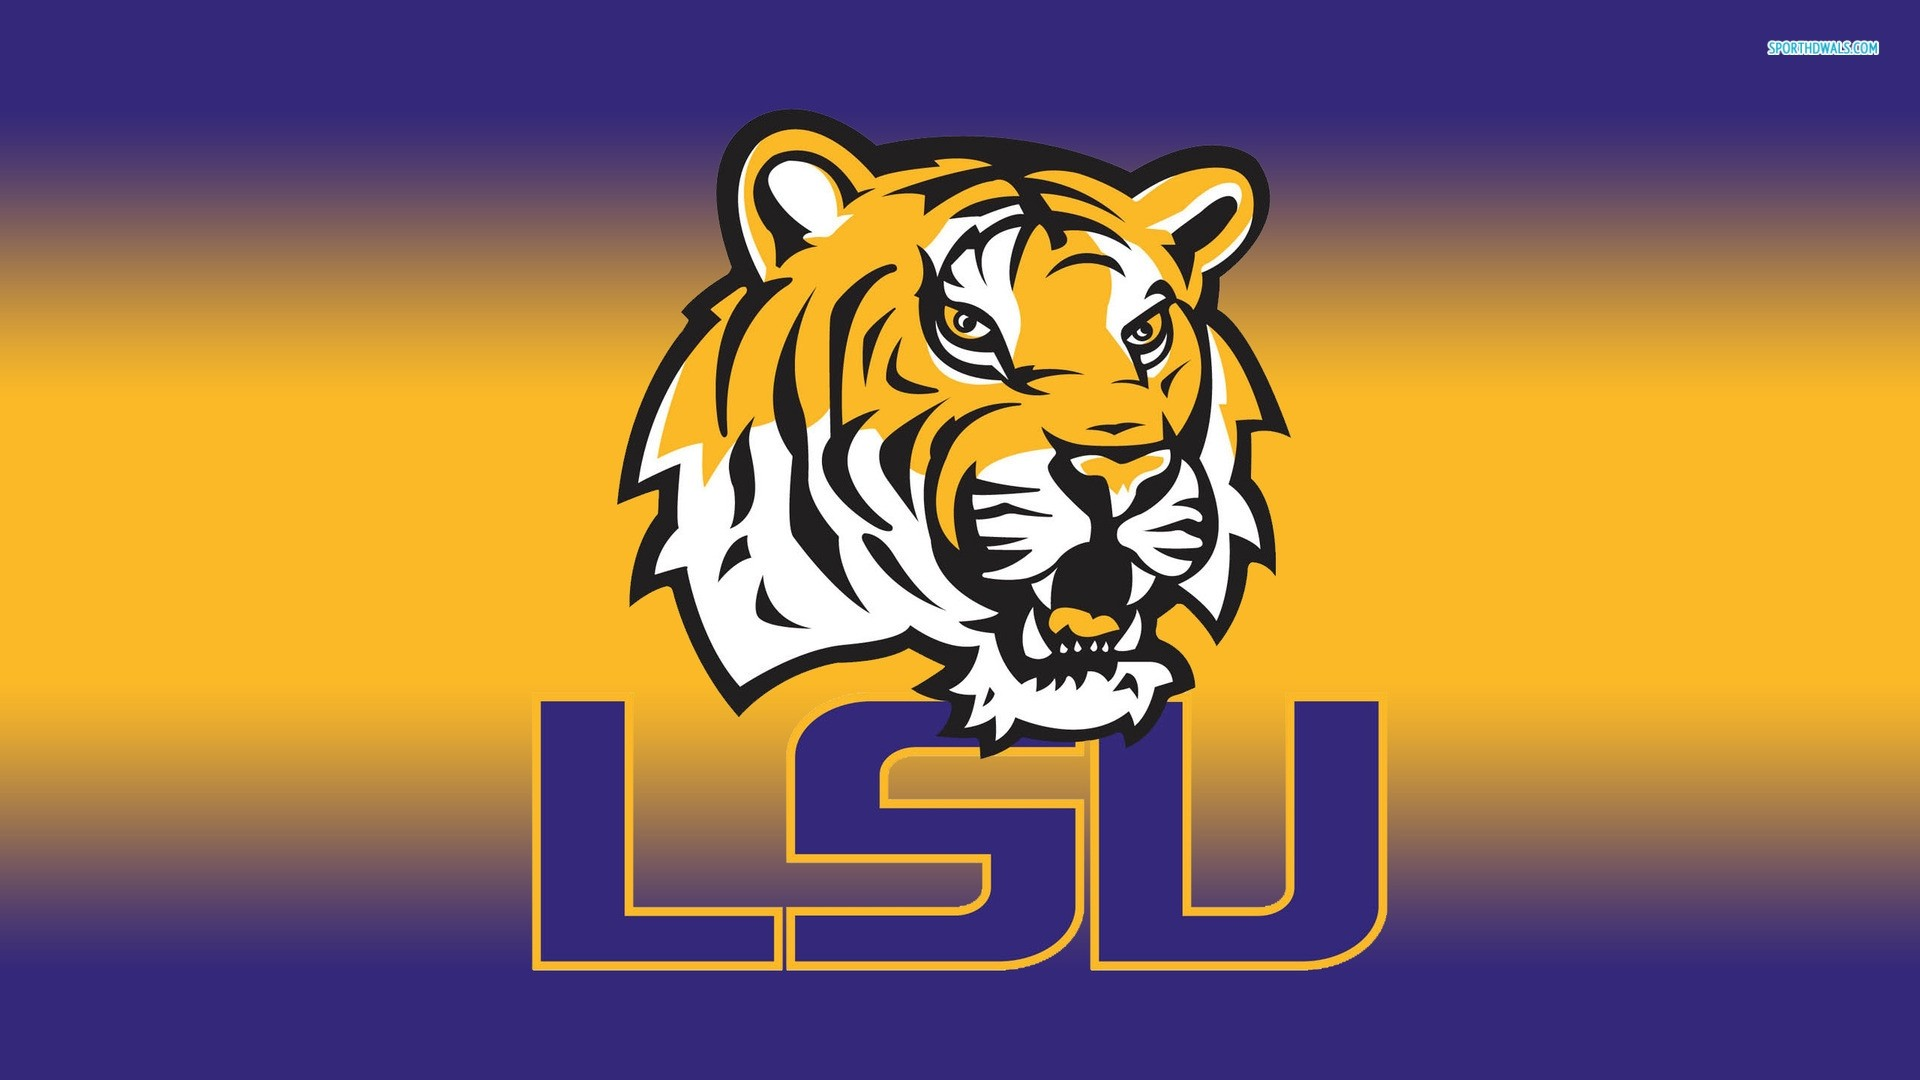 Lsu Free Wallpaper and Background